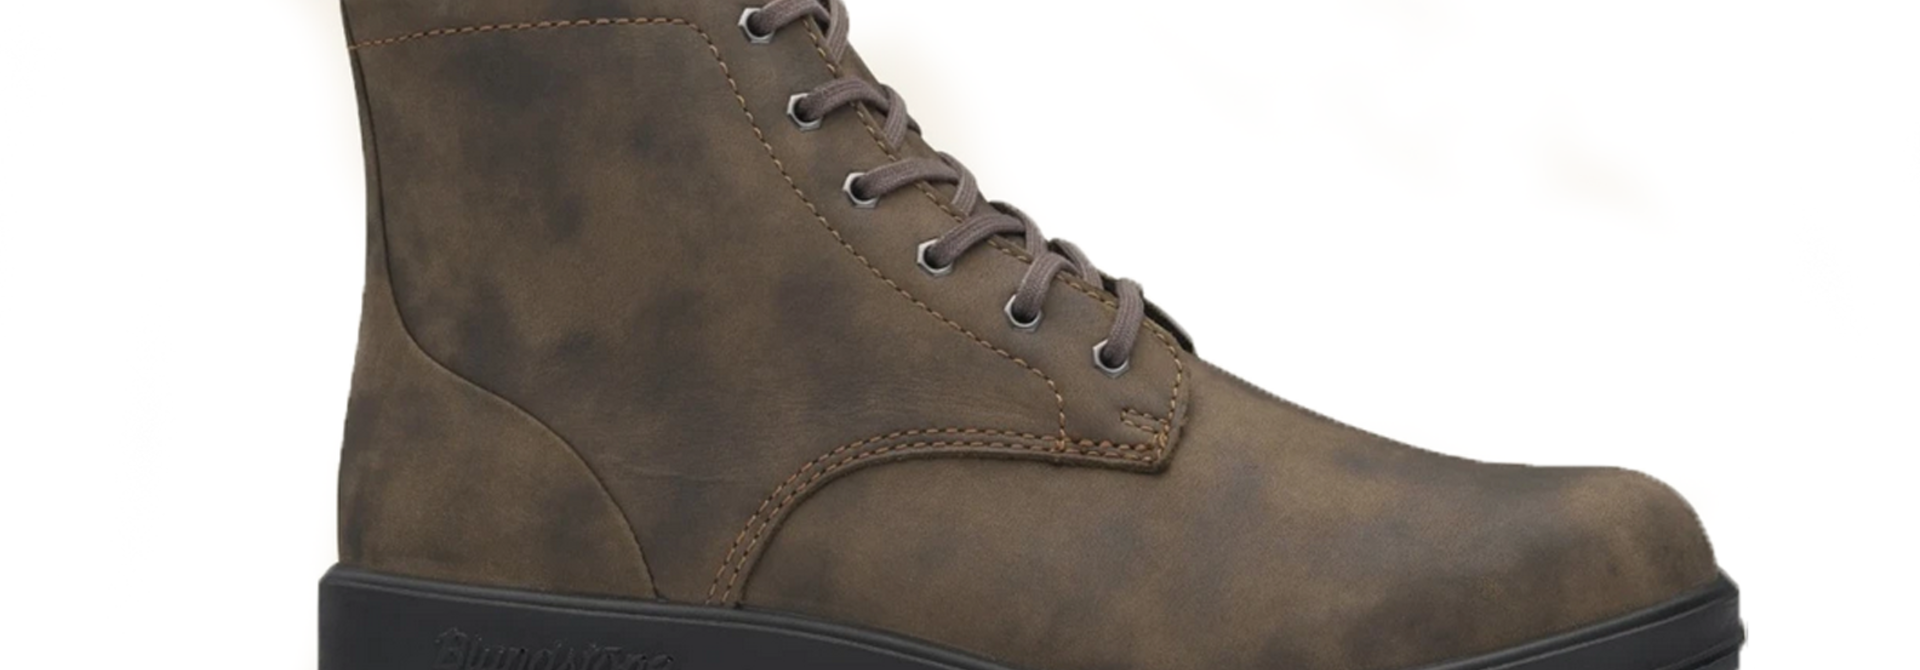 Original Lace Up Leather Boot, Rustic Brown